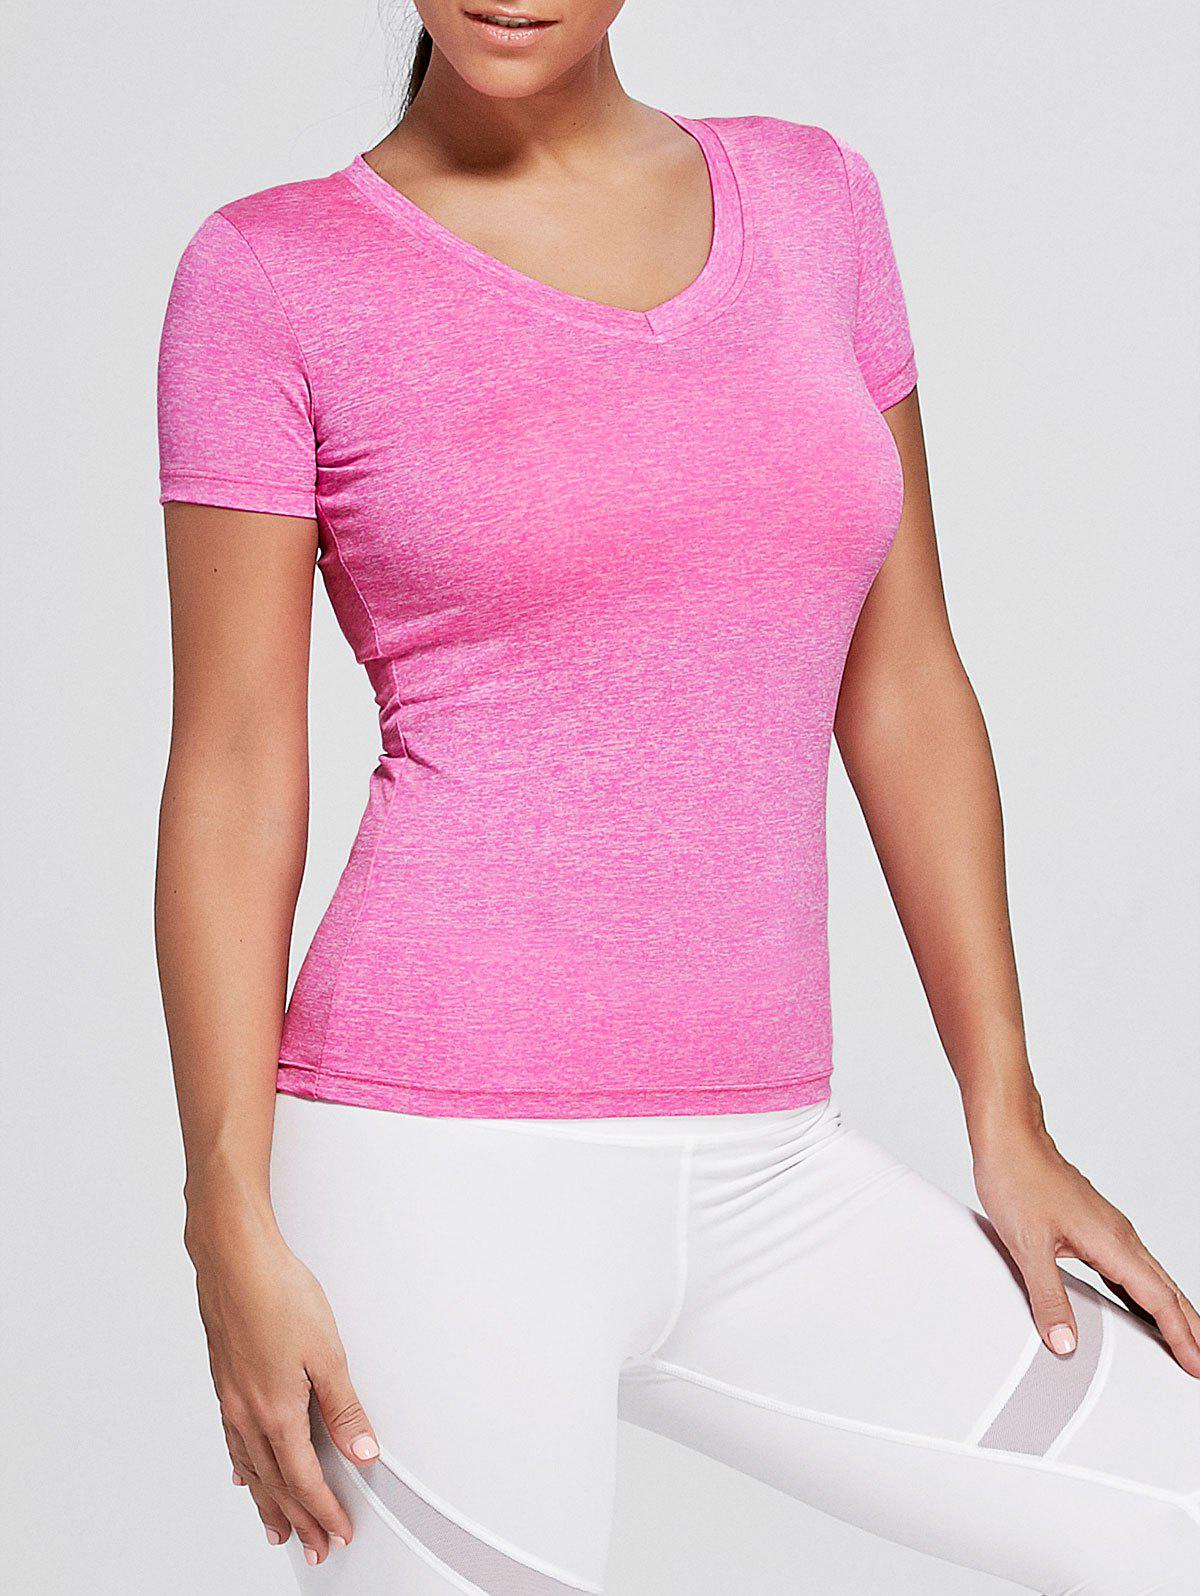 Breathable V Neck Sports T-shirt - TUTTI FRUTTI M